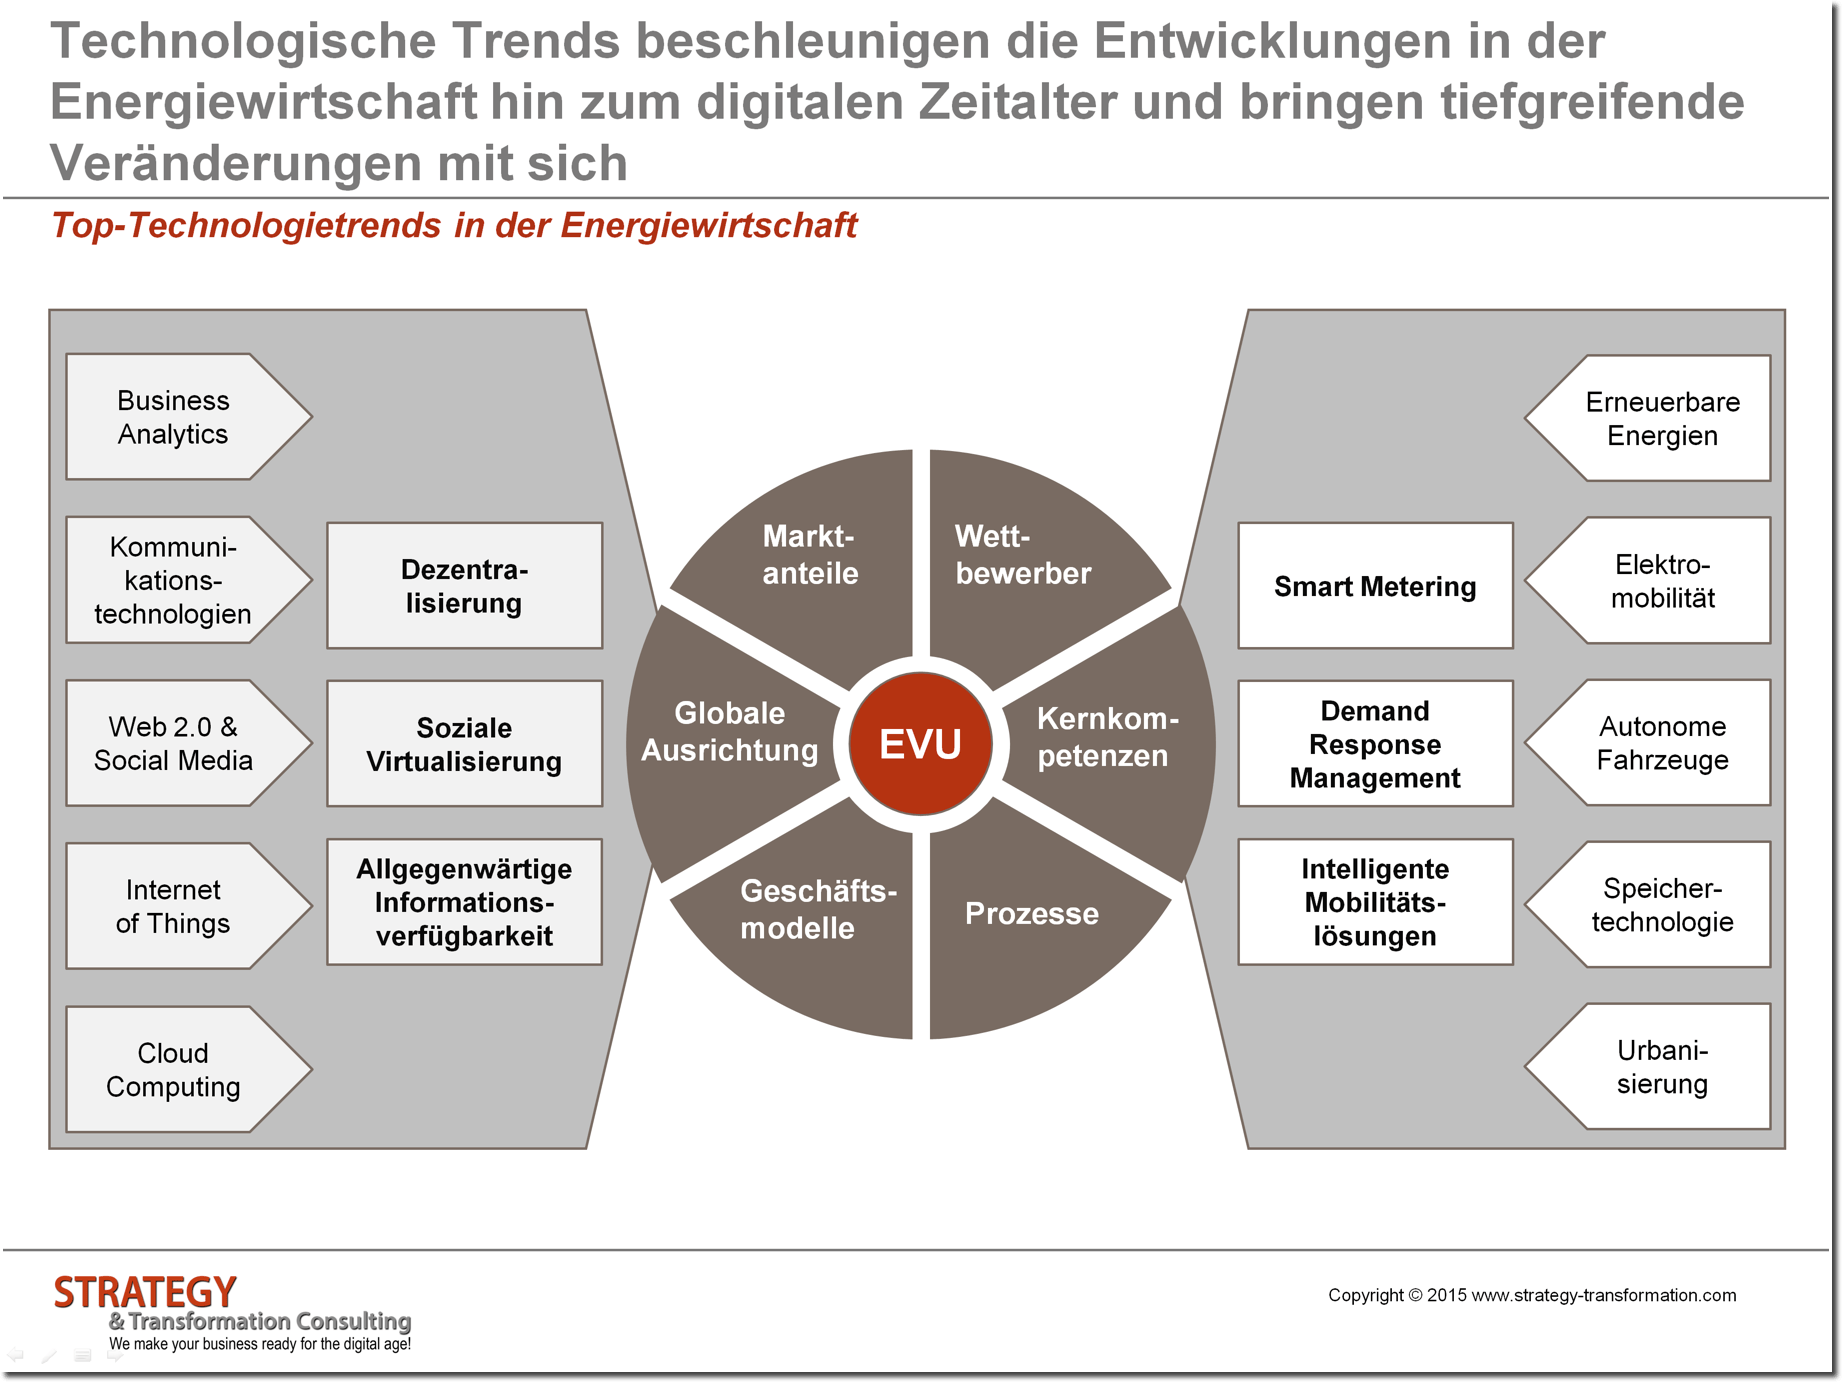 Top Technolgietrends in der Energiewirtschaft